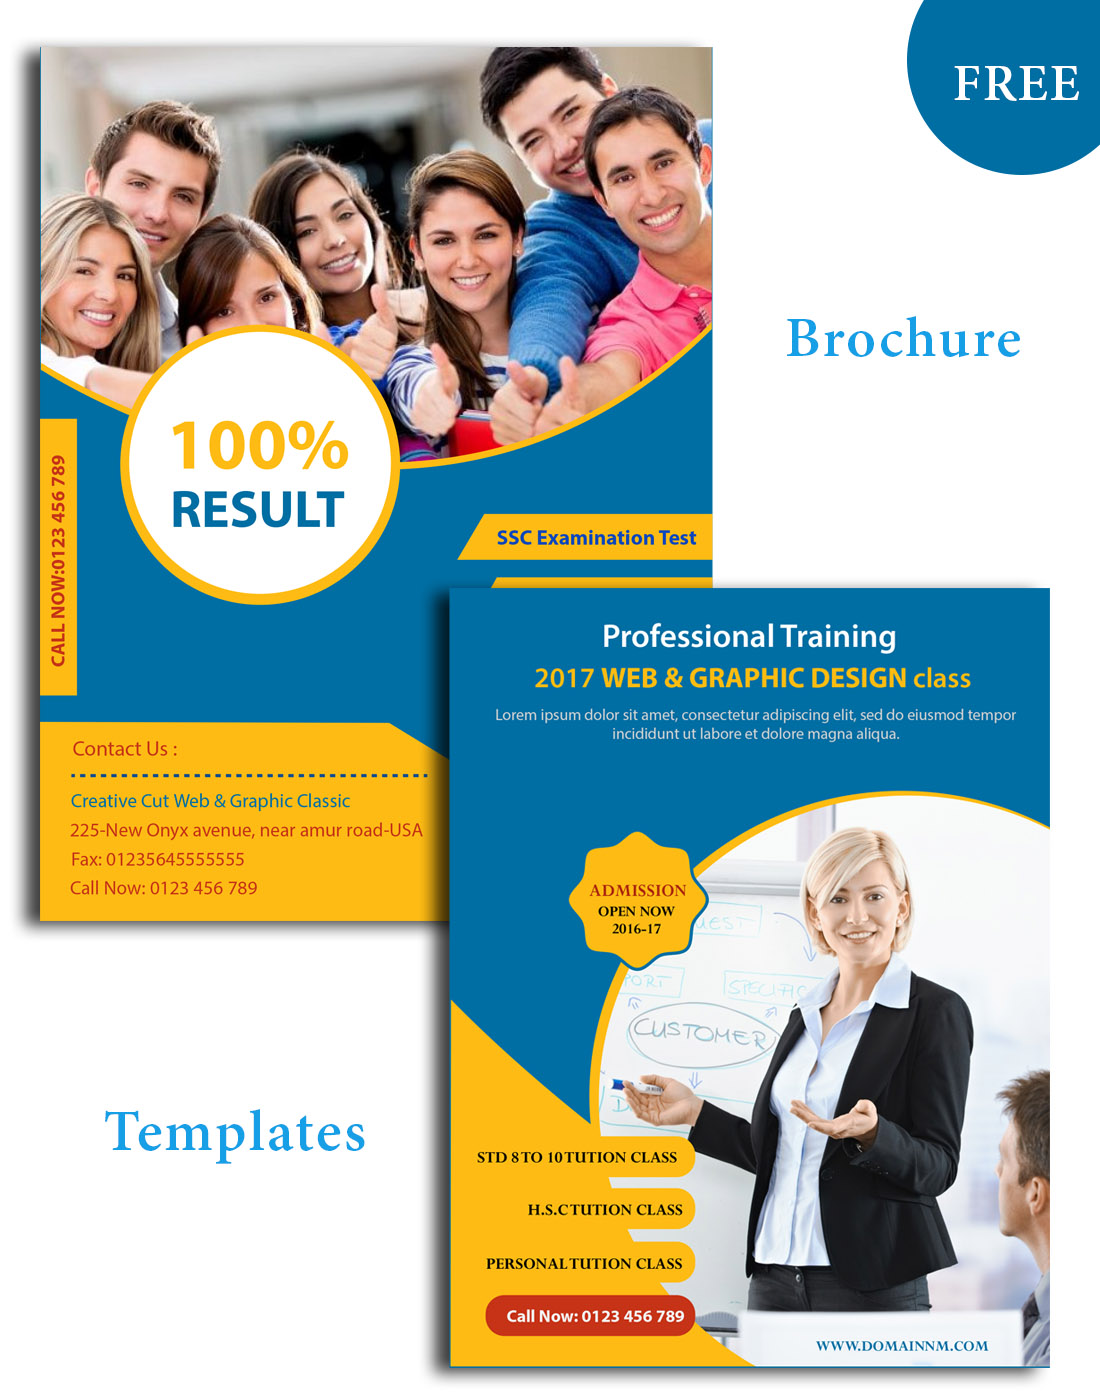 school brochure templates - diwali vector template graphic design illustration